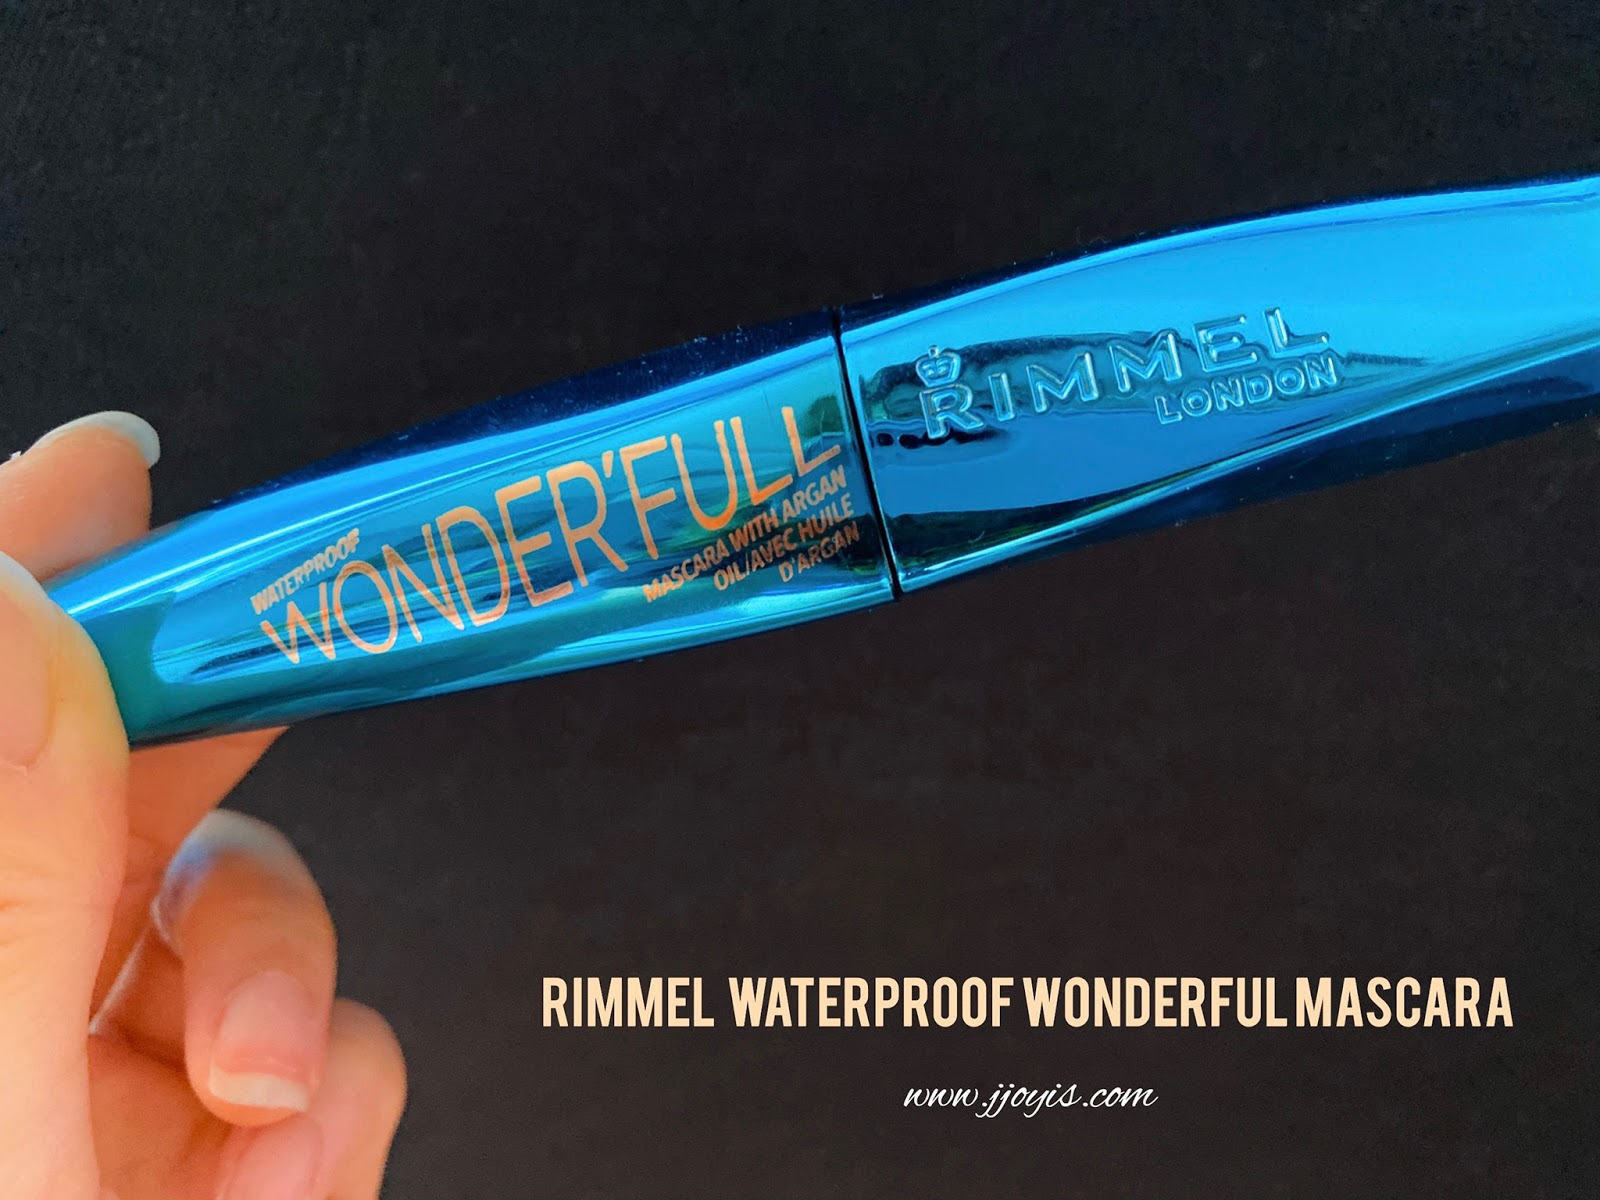 Rimmel, waterproof wonderful mascara with argan oil, waterproof mascara, reveiw